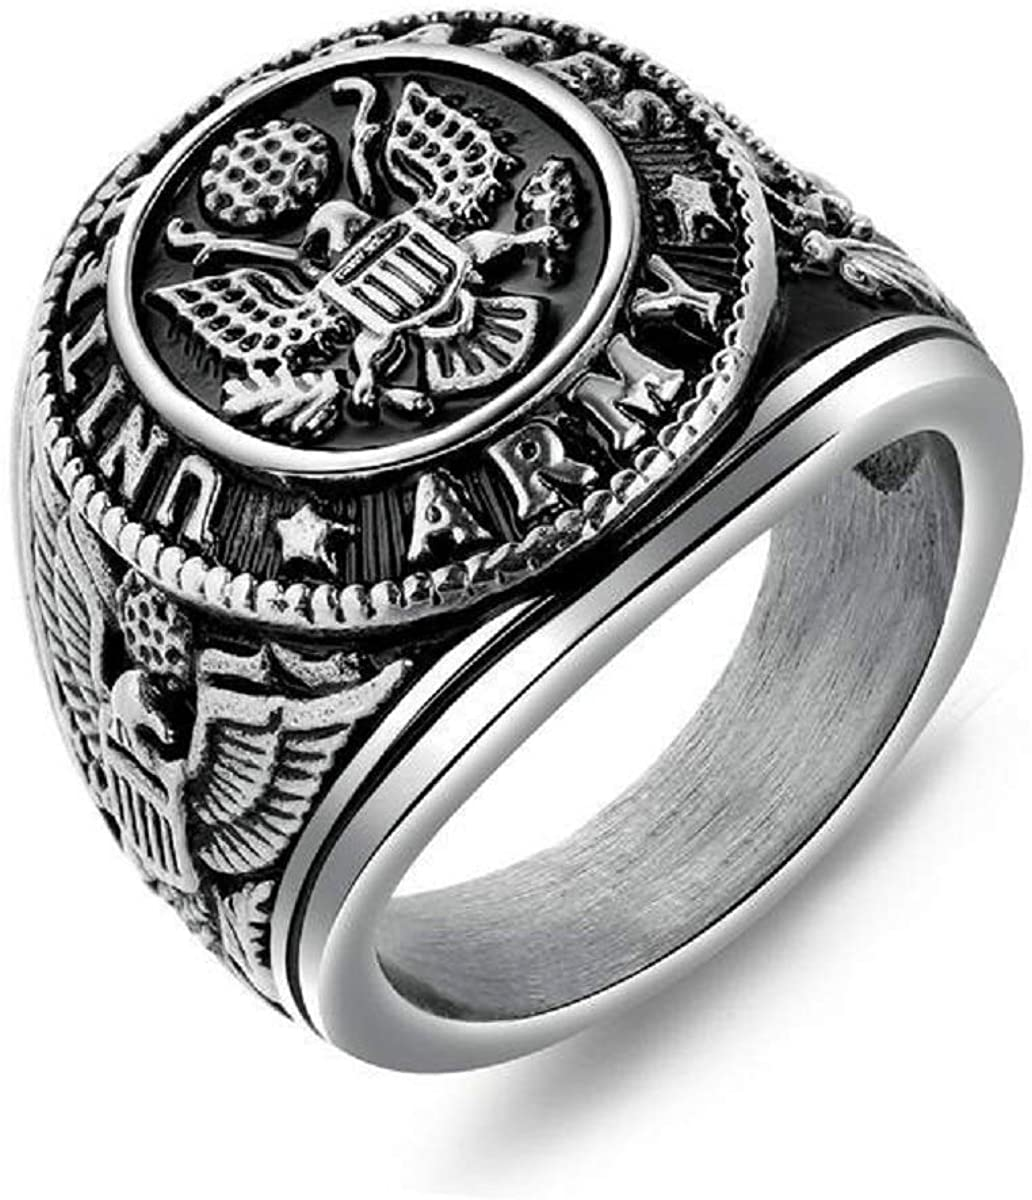 Men's Stainless Steel Domineering Vintage US Military Army Ring Eagle Medal Rings For Men Retro Punk Badge Eagle Ring Men Vintage Jewelry Gift For Boys Husband Father's Day Accessories